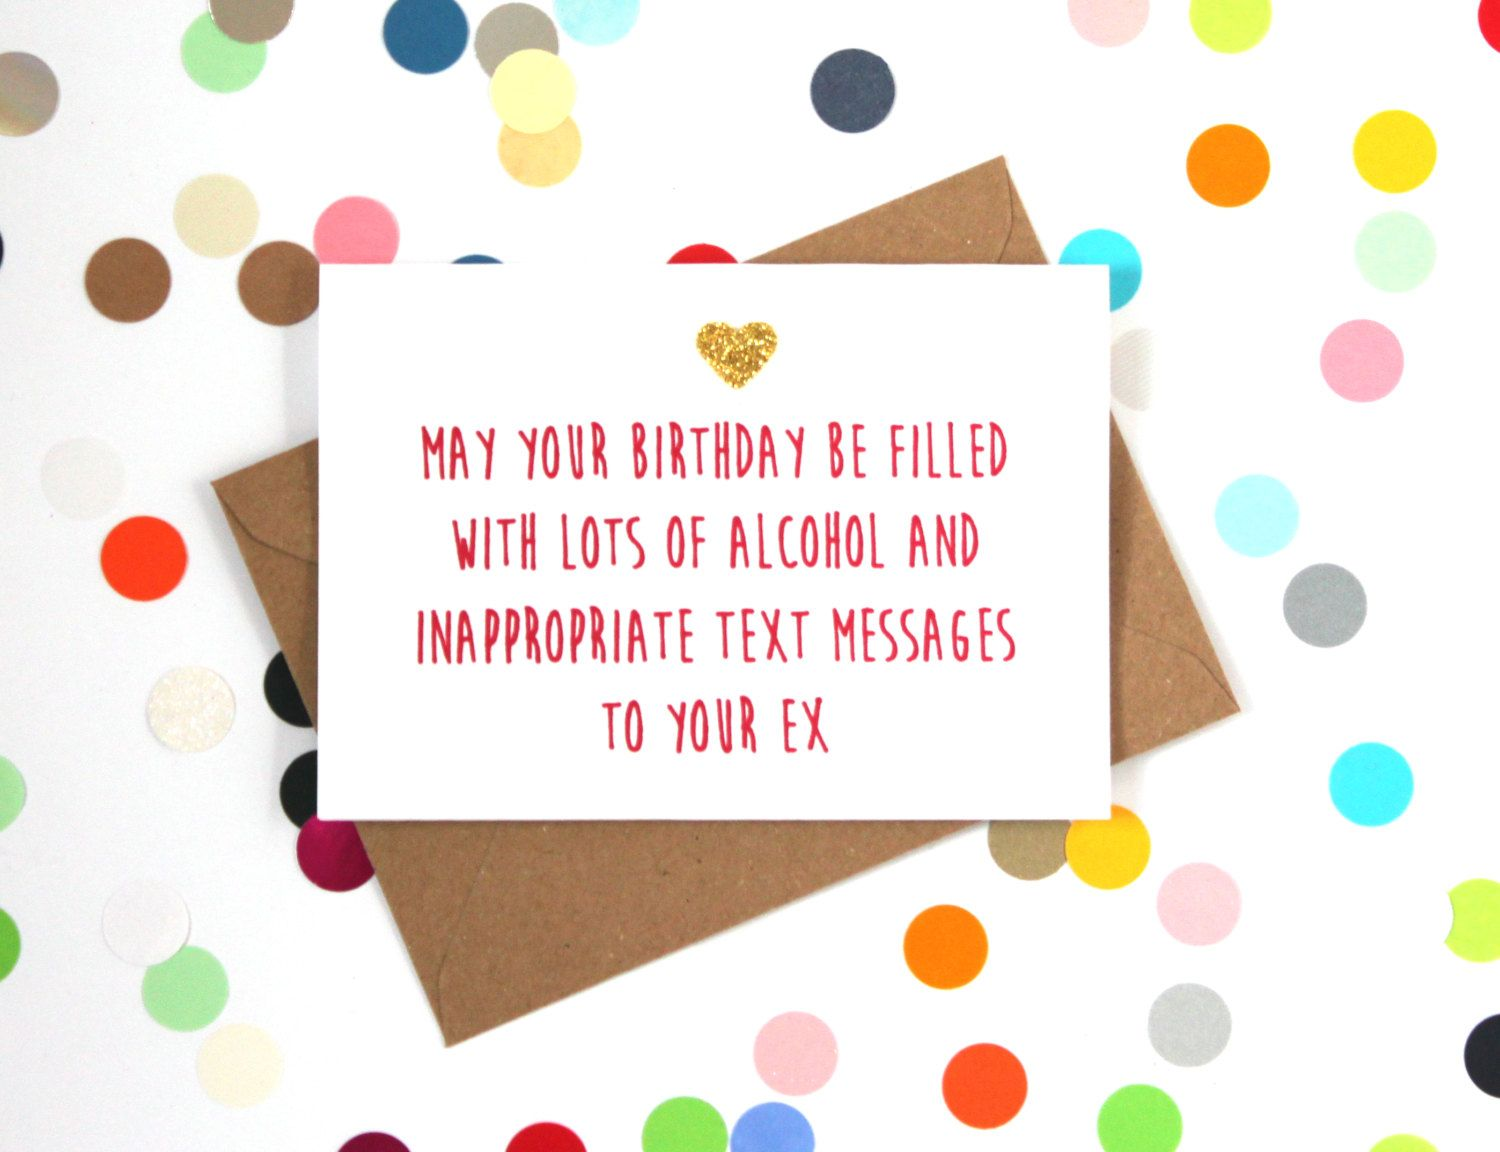 Funny birthday card May your birthday be filled with lots of – Birthday Cards for Text Messages